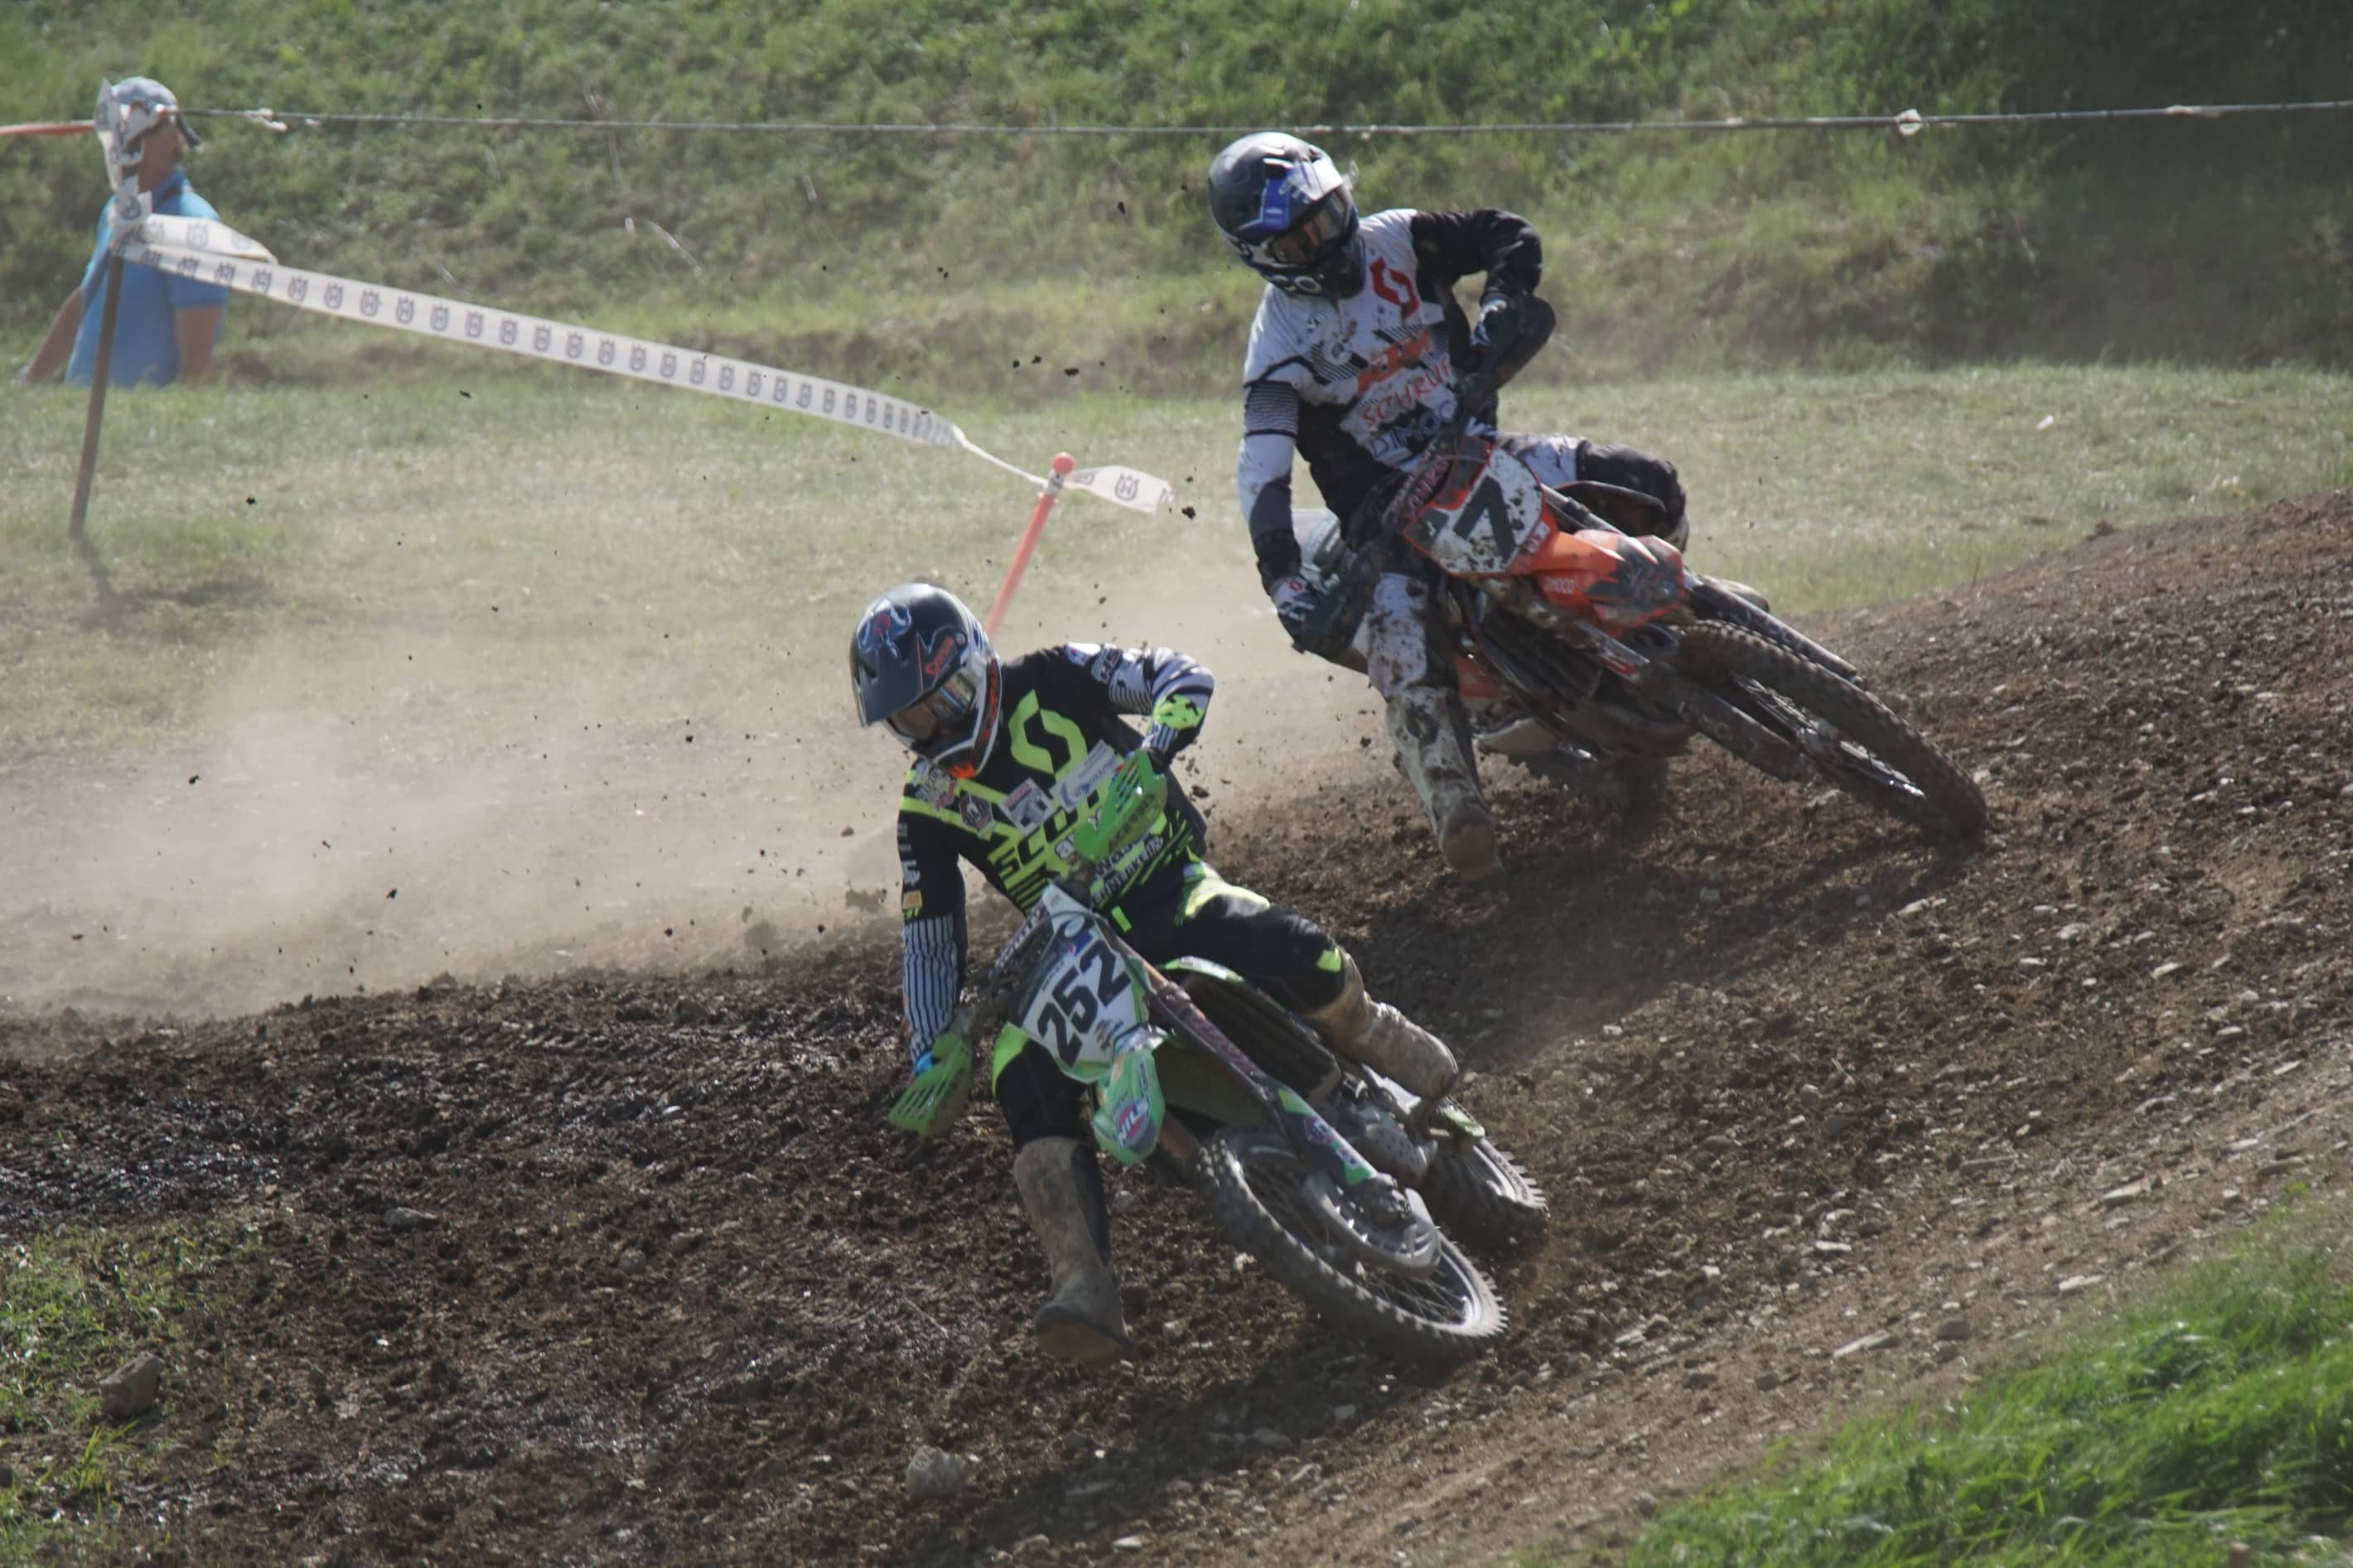 DSC 807_Moto Cross Sittendorf Teil1 am 29.04.2018